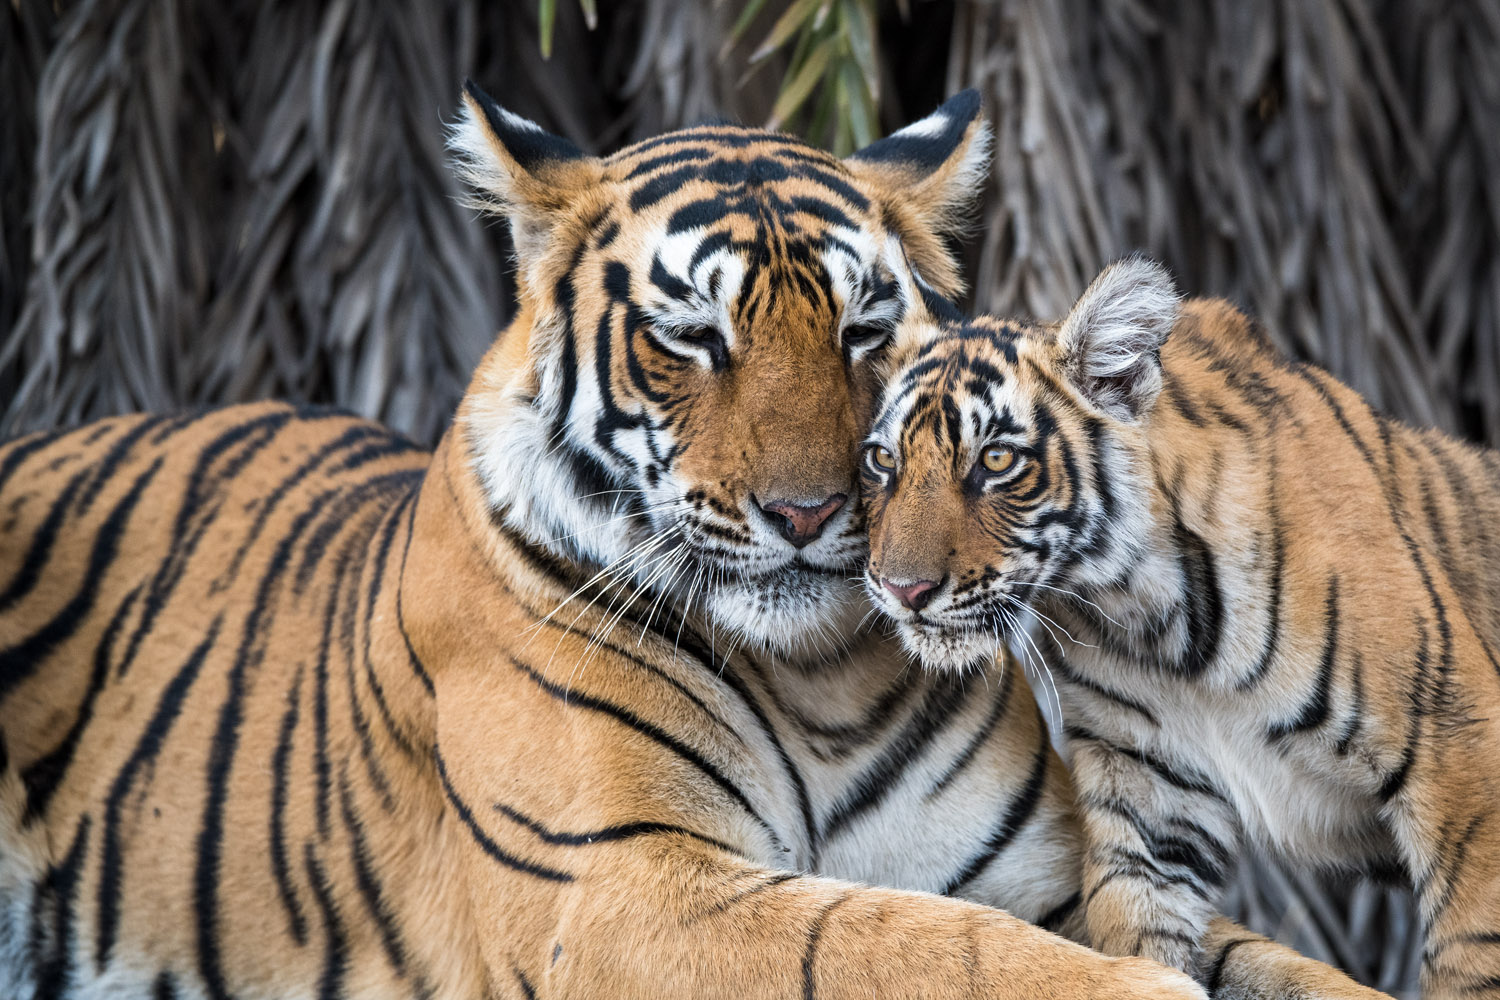 Bengal tiger mother interacting with cub, Ranthambhore National Park, Rajasthan, India